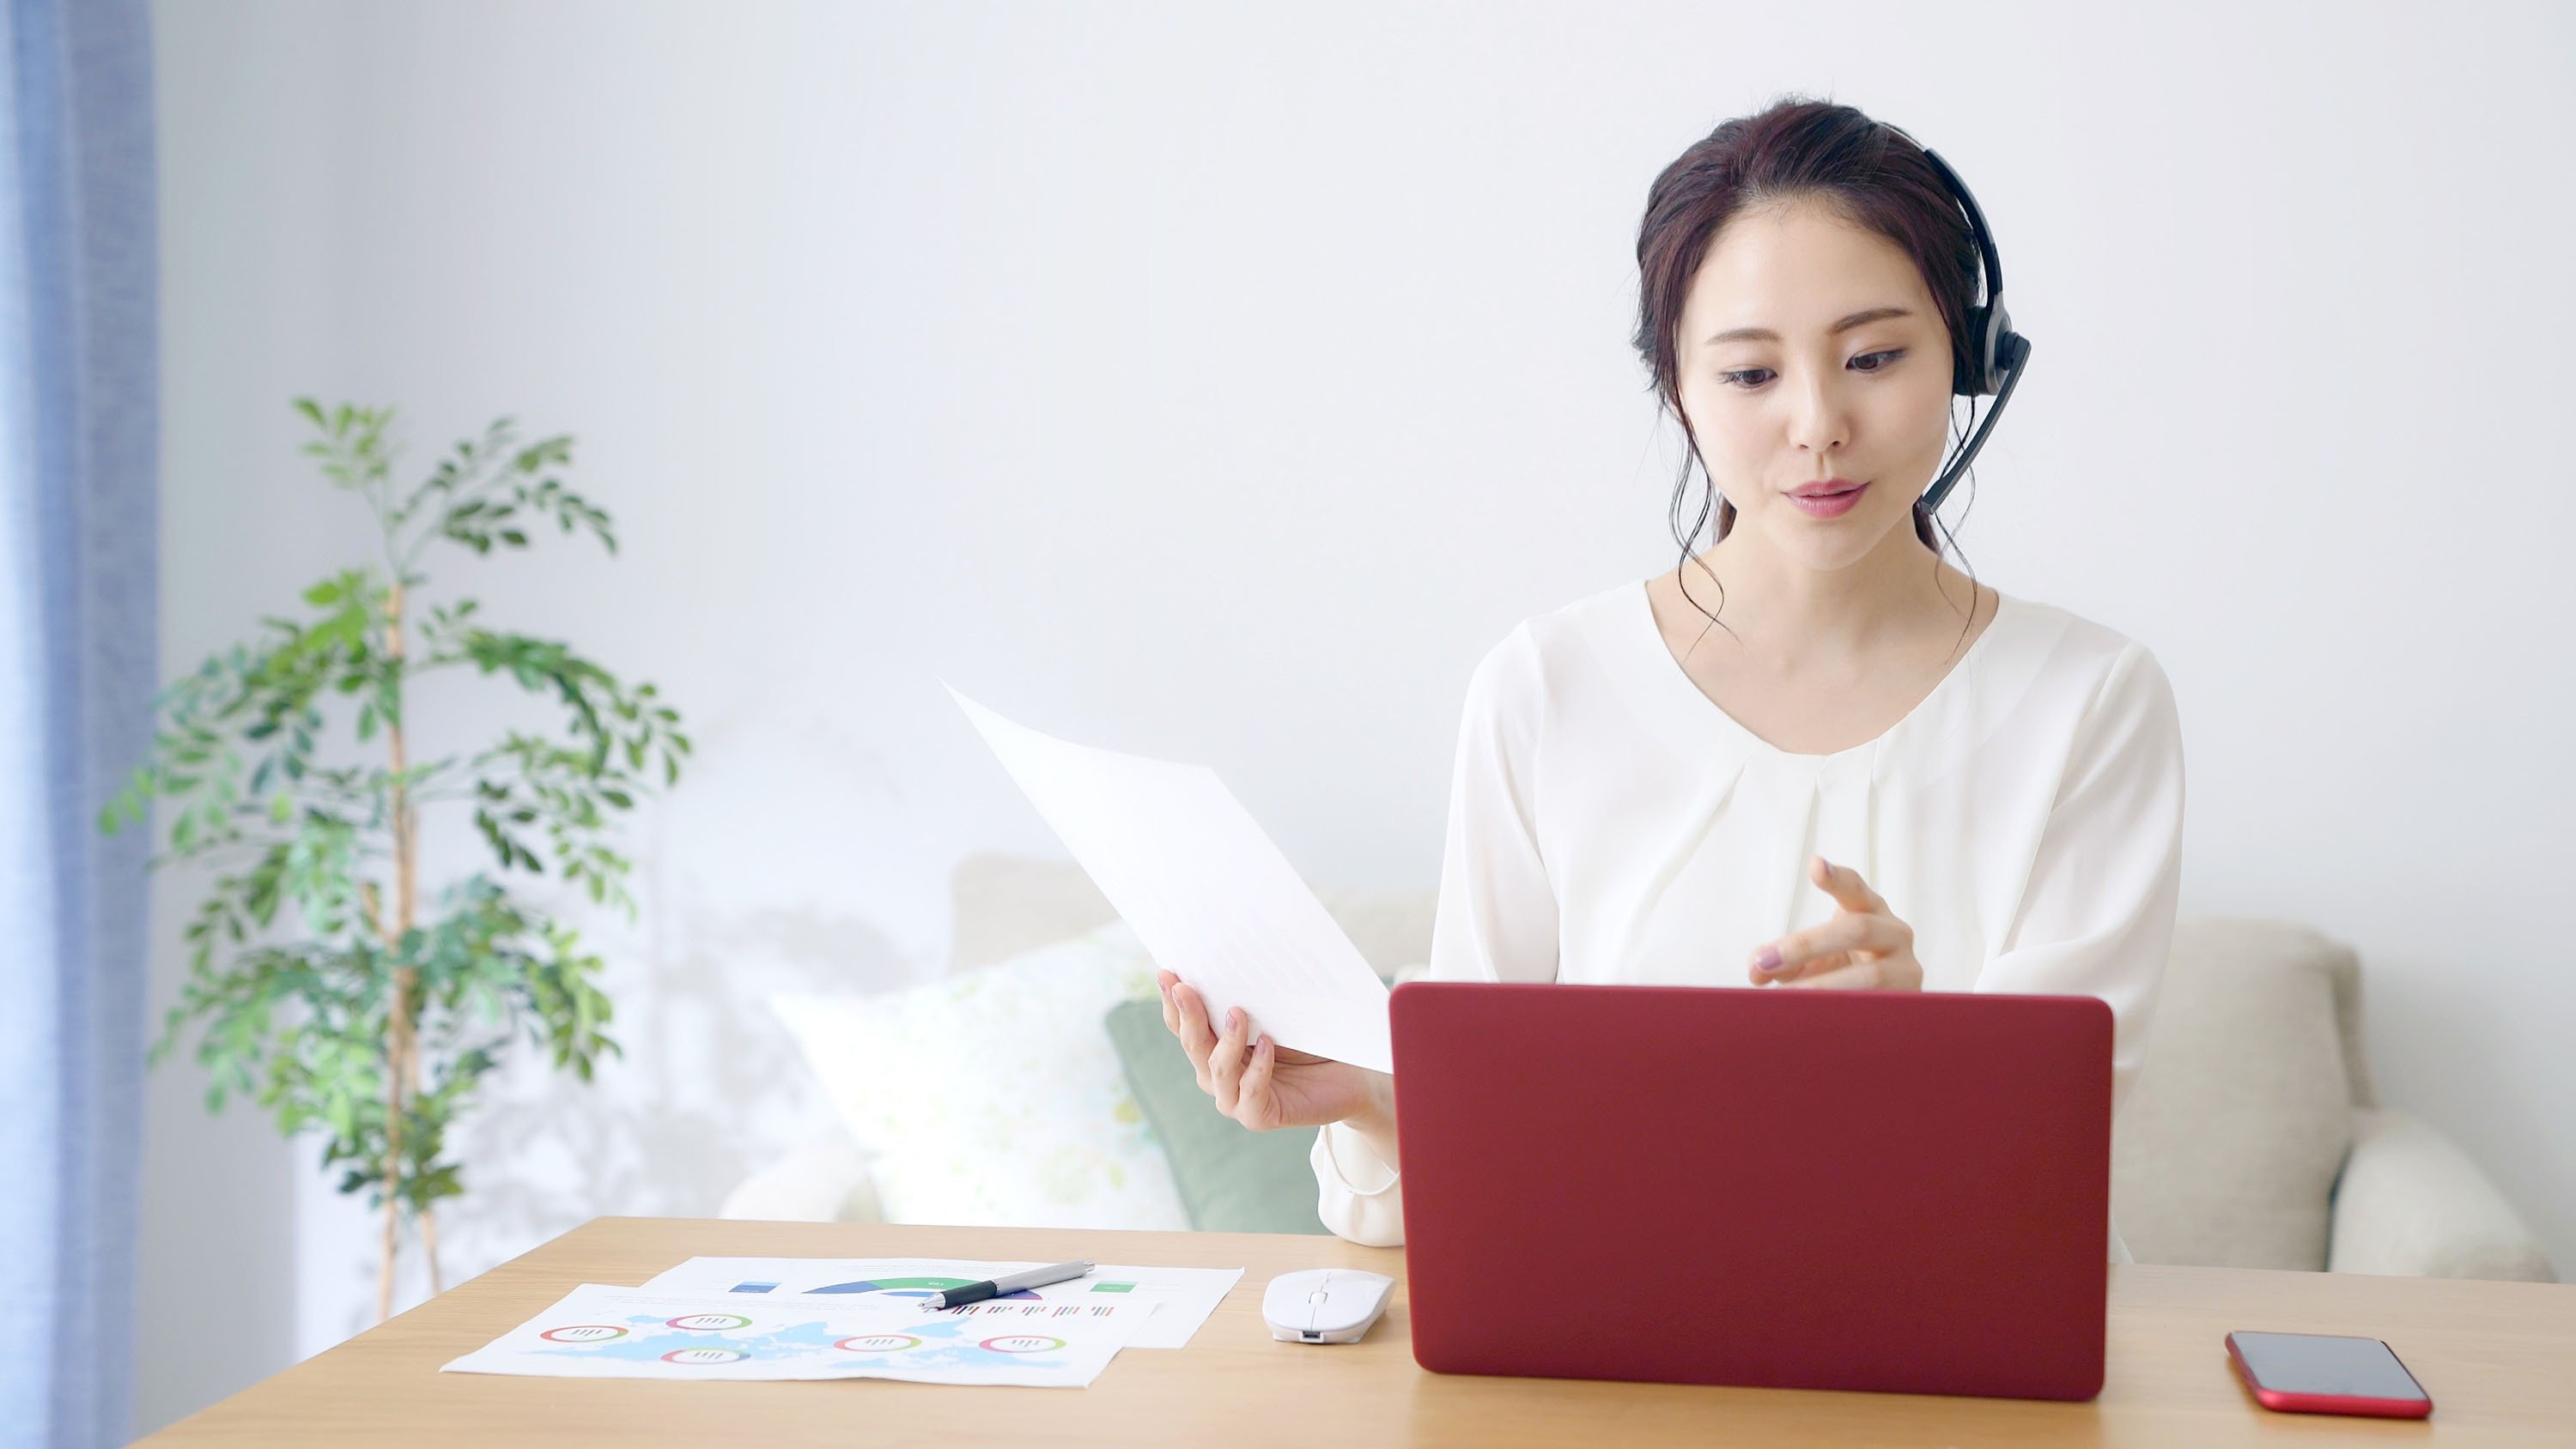 A remote worker works from home with a laptop. (Shutterstock Photo)